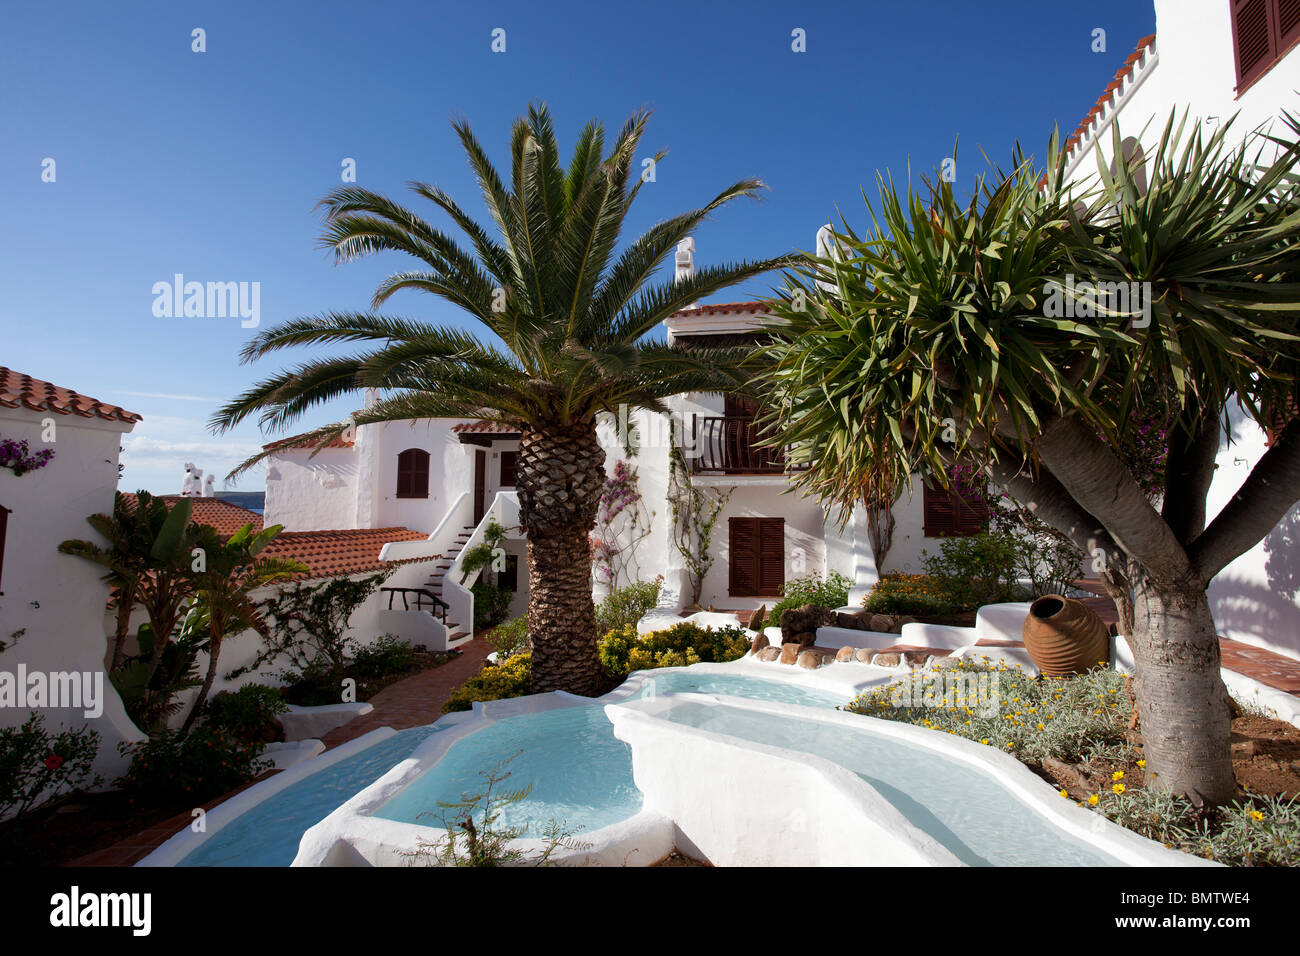 luxury spanish villa with water feature in courtyard Stock Photo